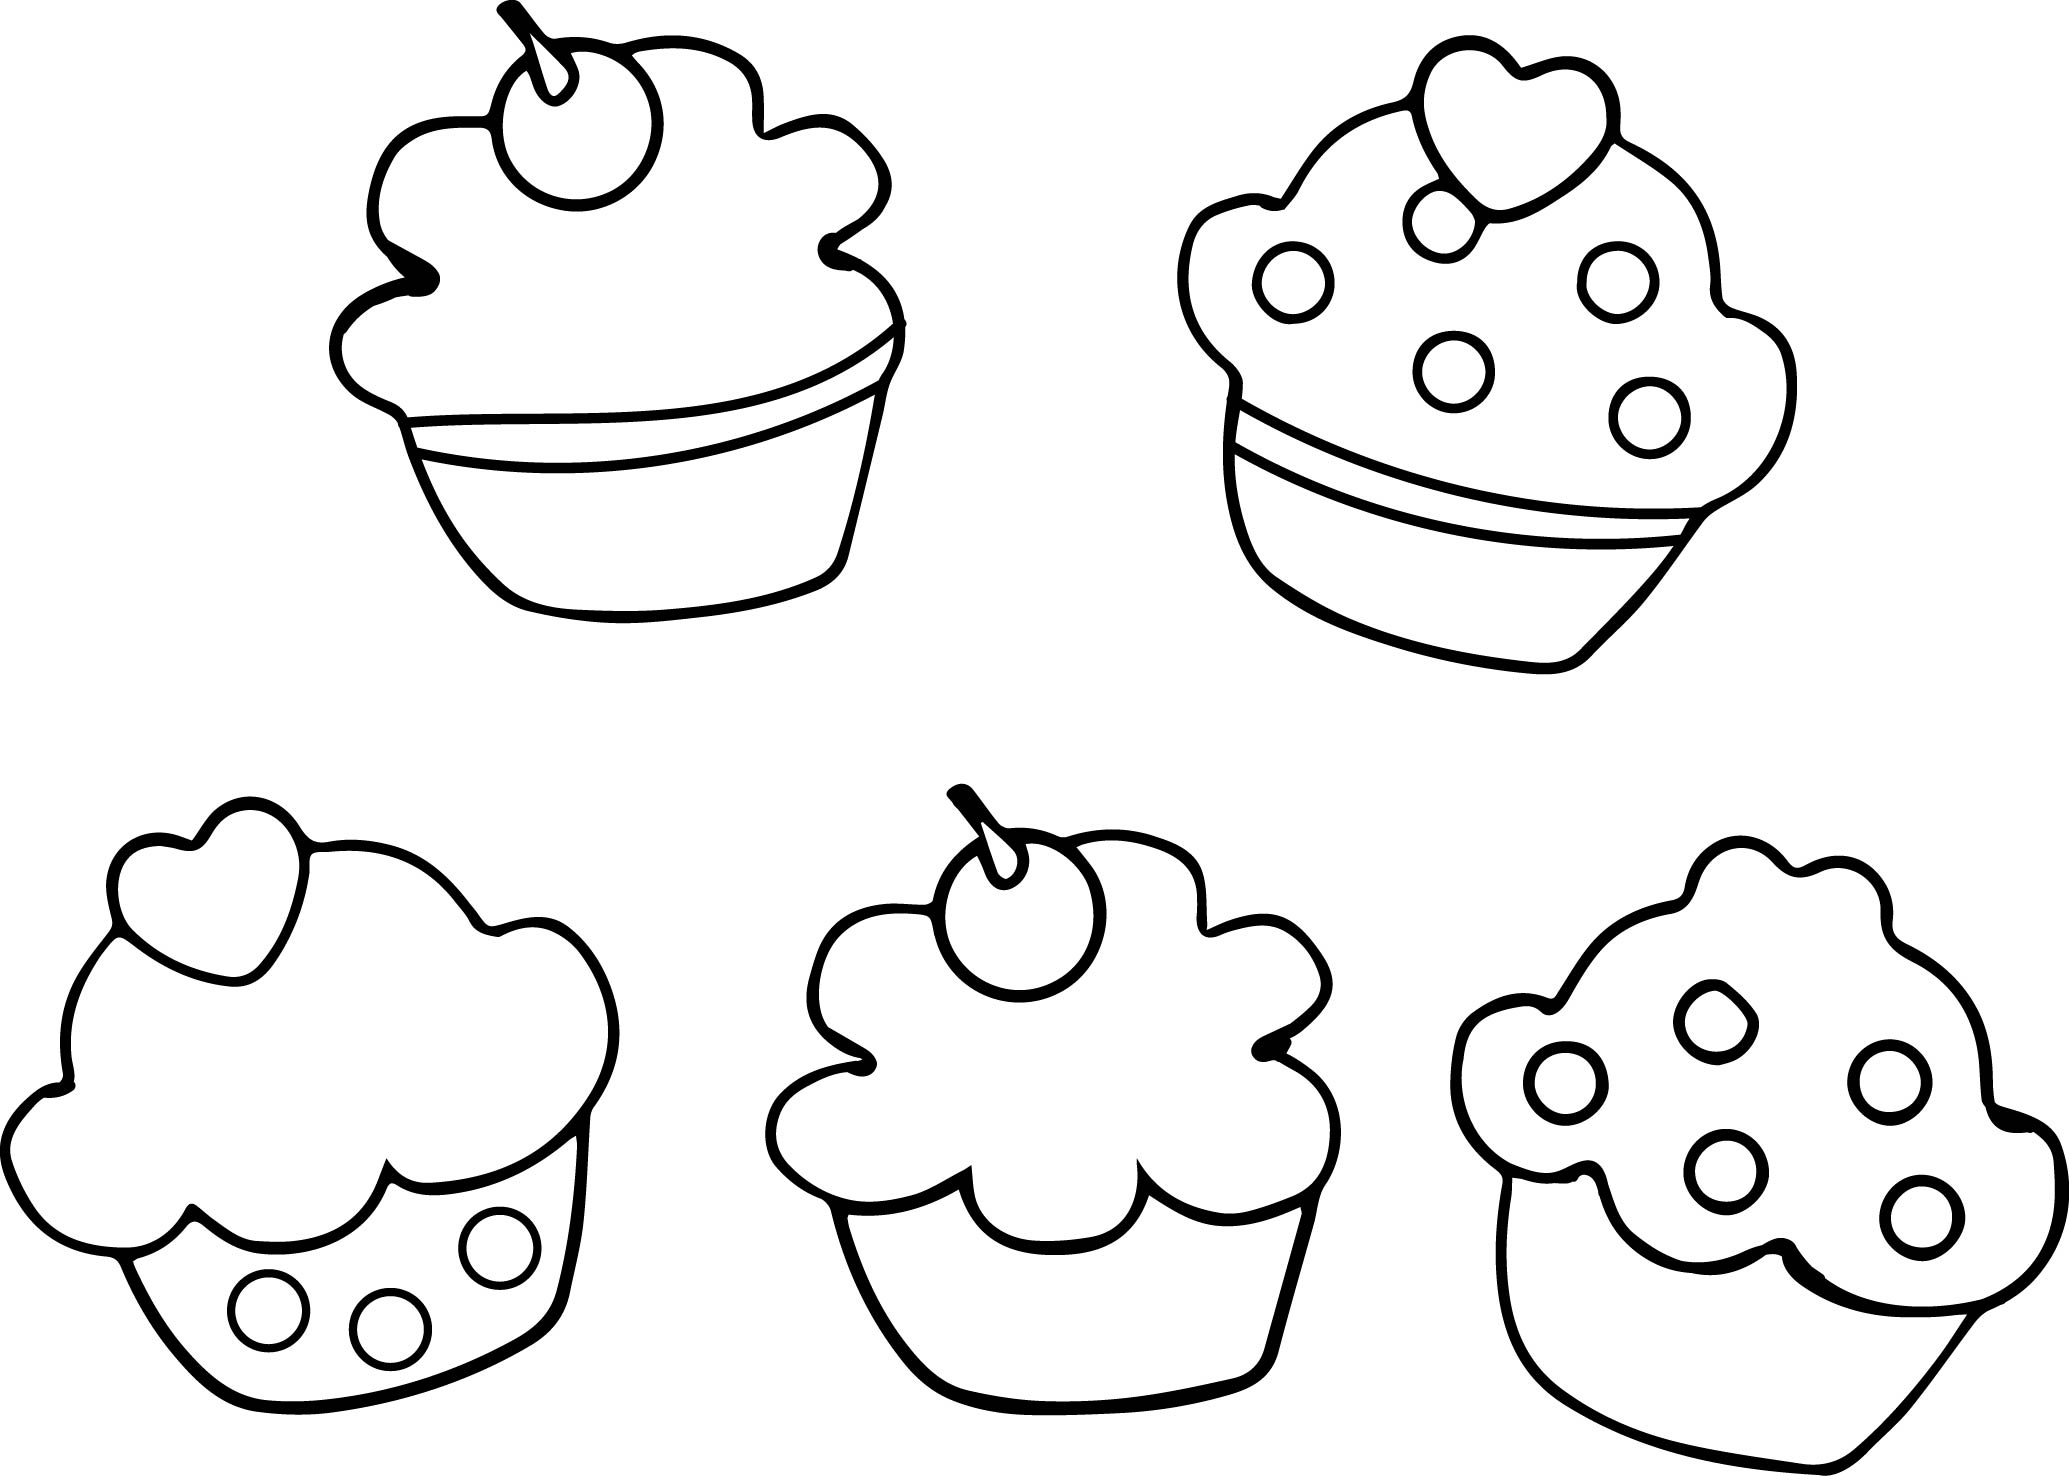 Cupcakes Printable Outline Black White Coloring Page